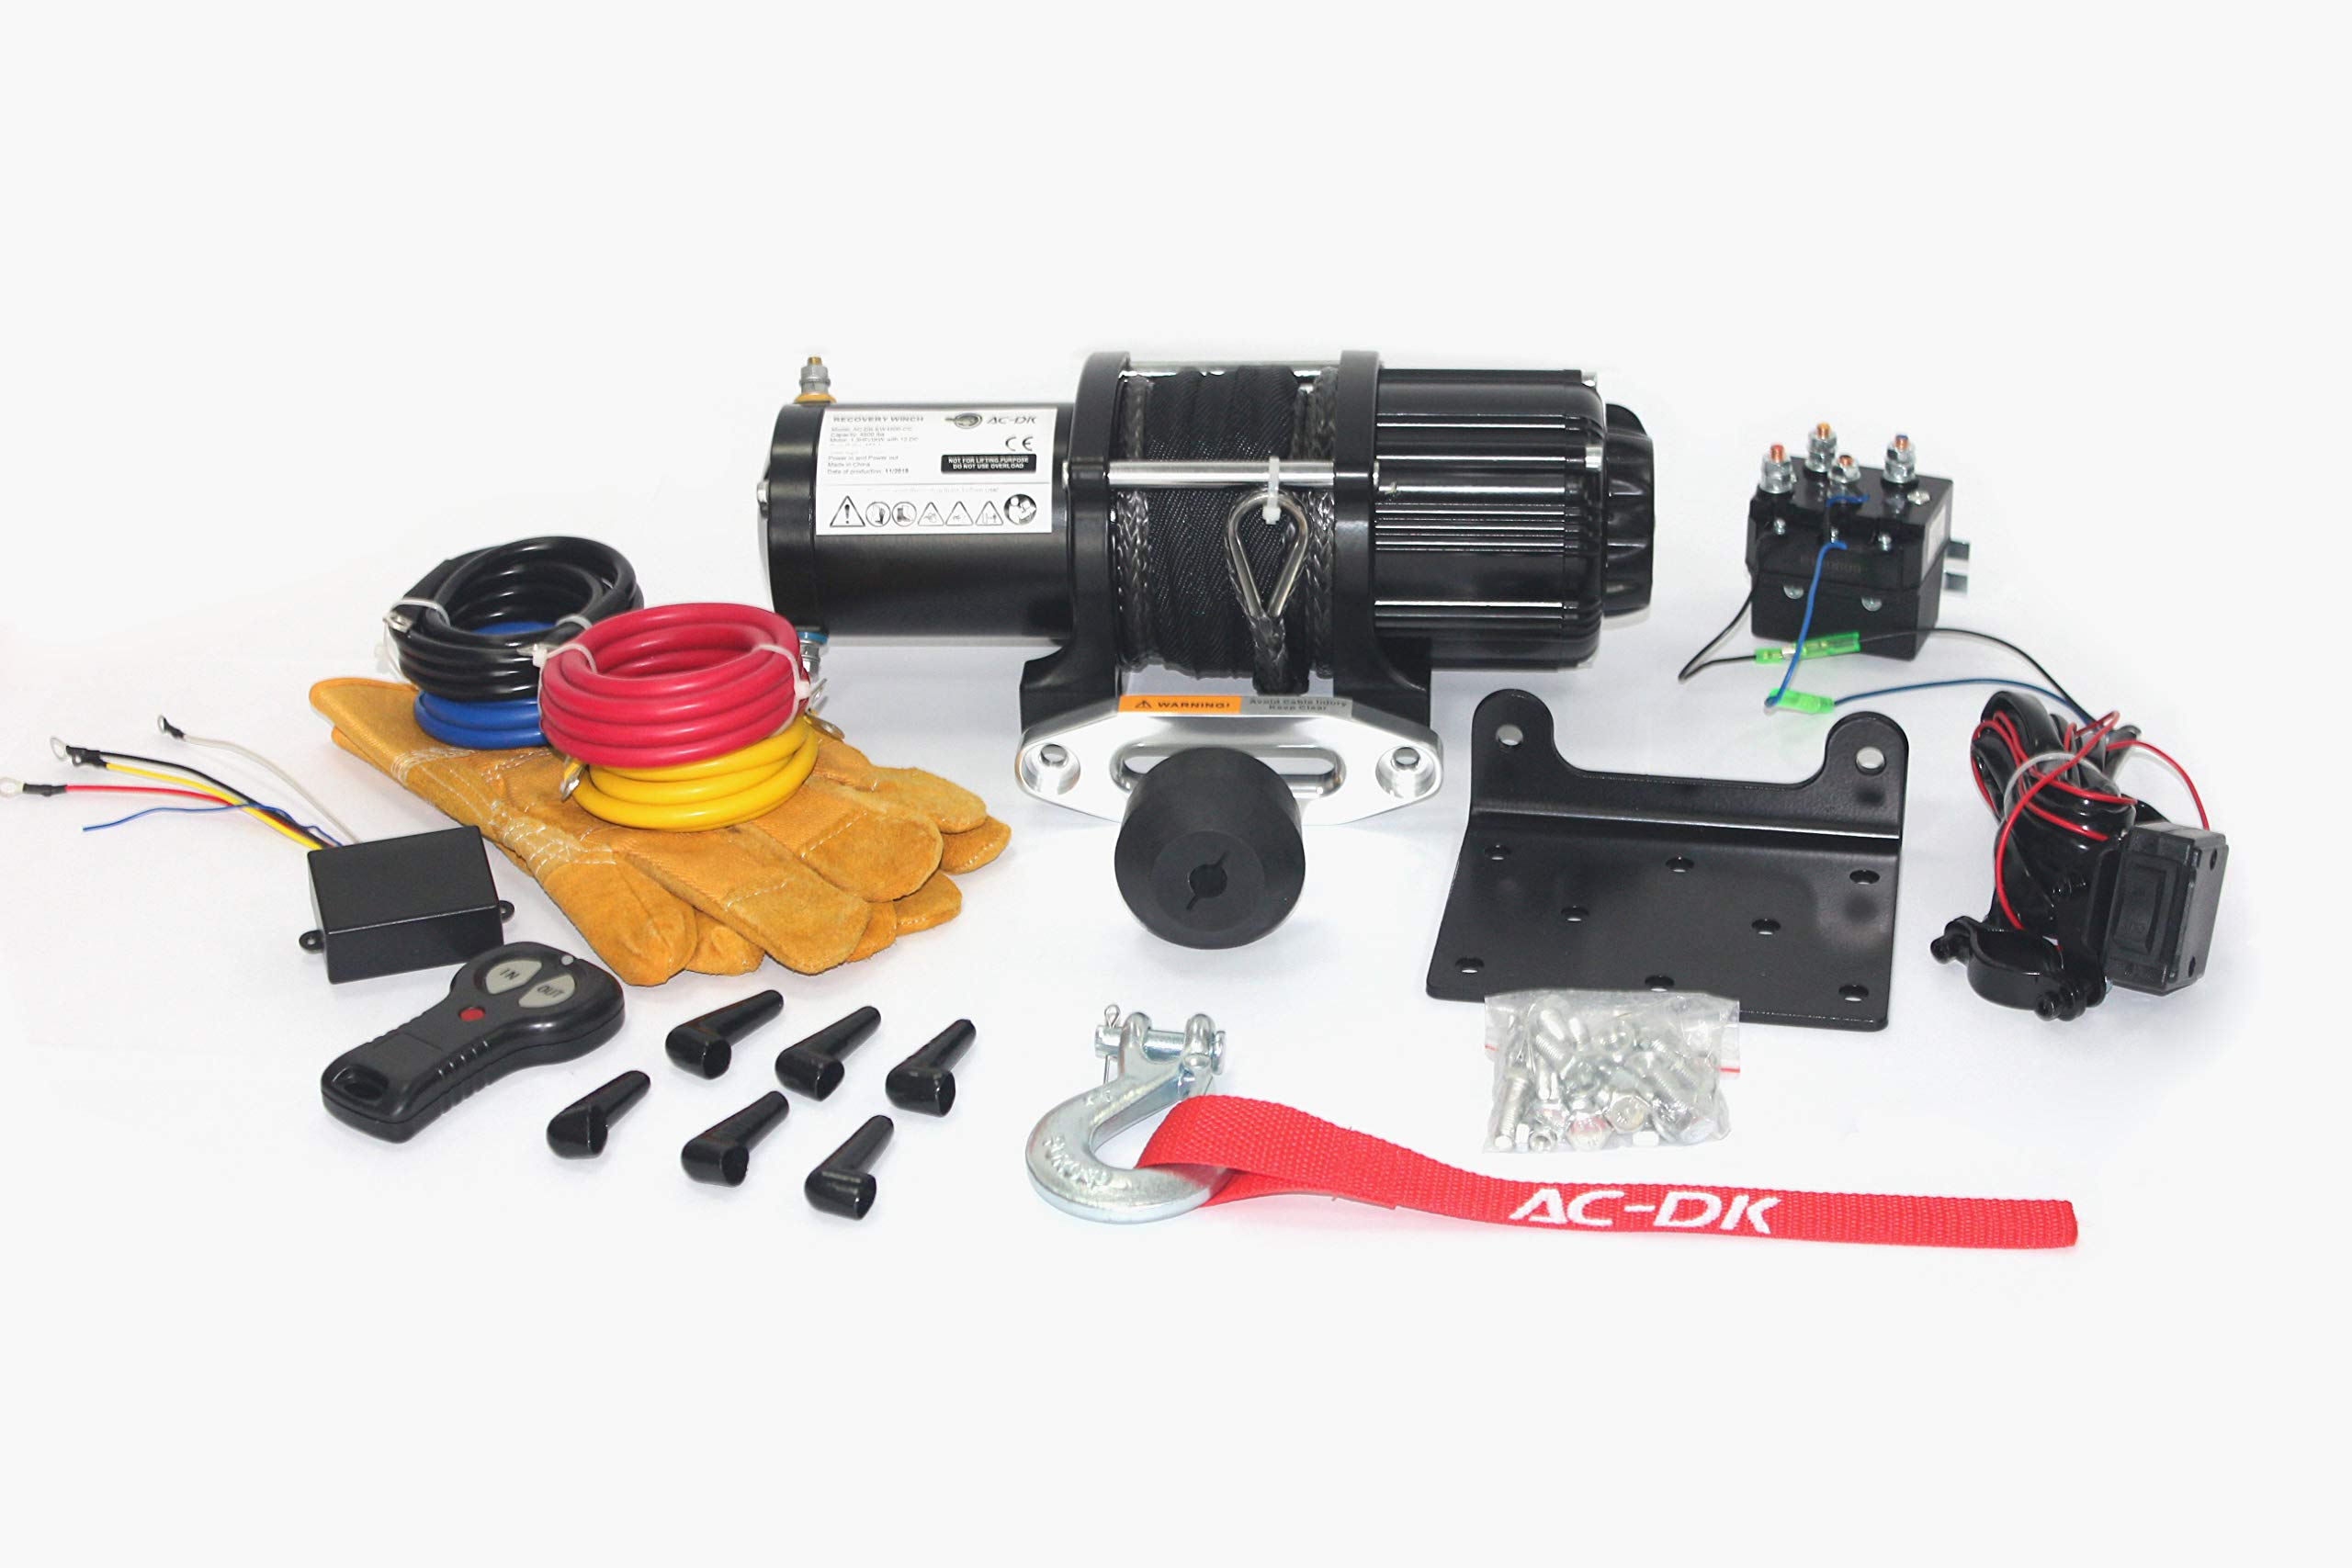 AC-DK 12V 4500lb ATV Winch UTV Winch Electric Winch Set for 4x4 Off Road (4500lb Winch with Synthetic Rope) by AC-DK (Image #1)